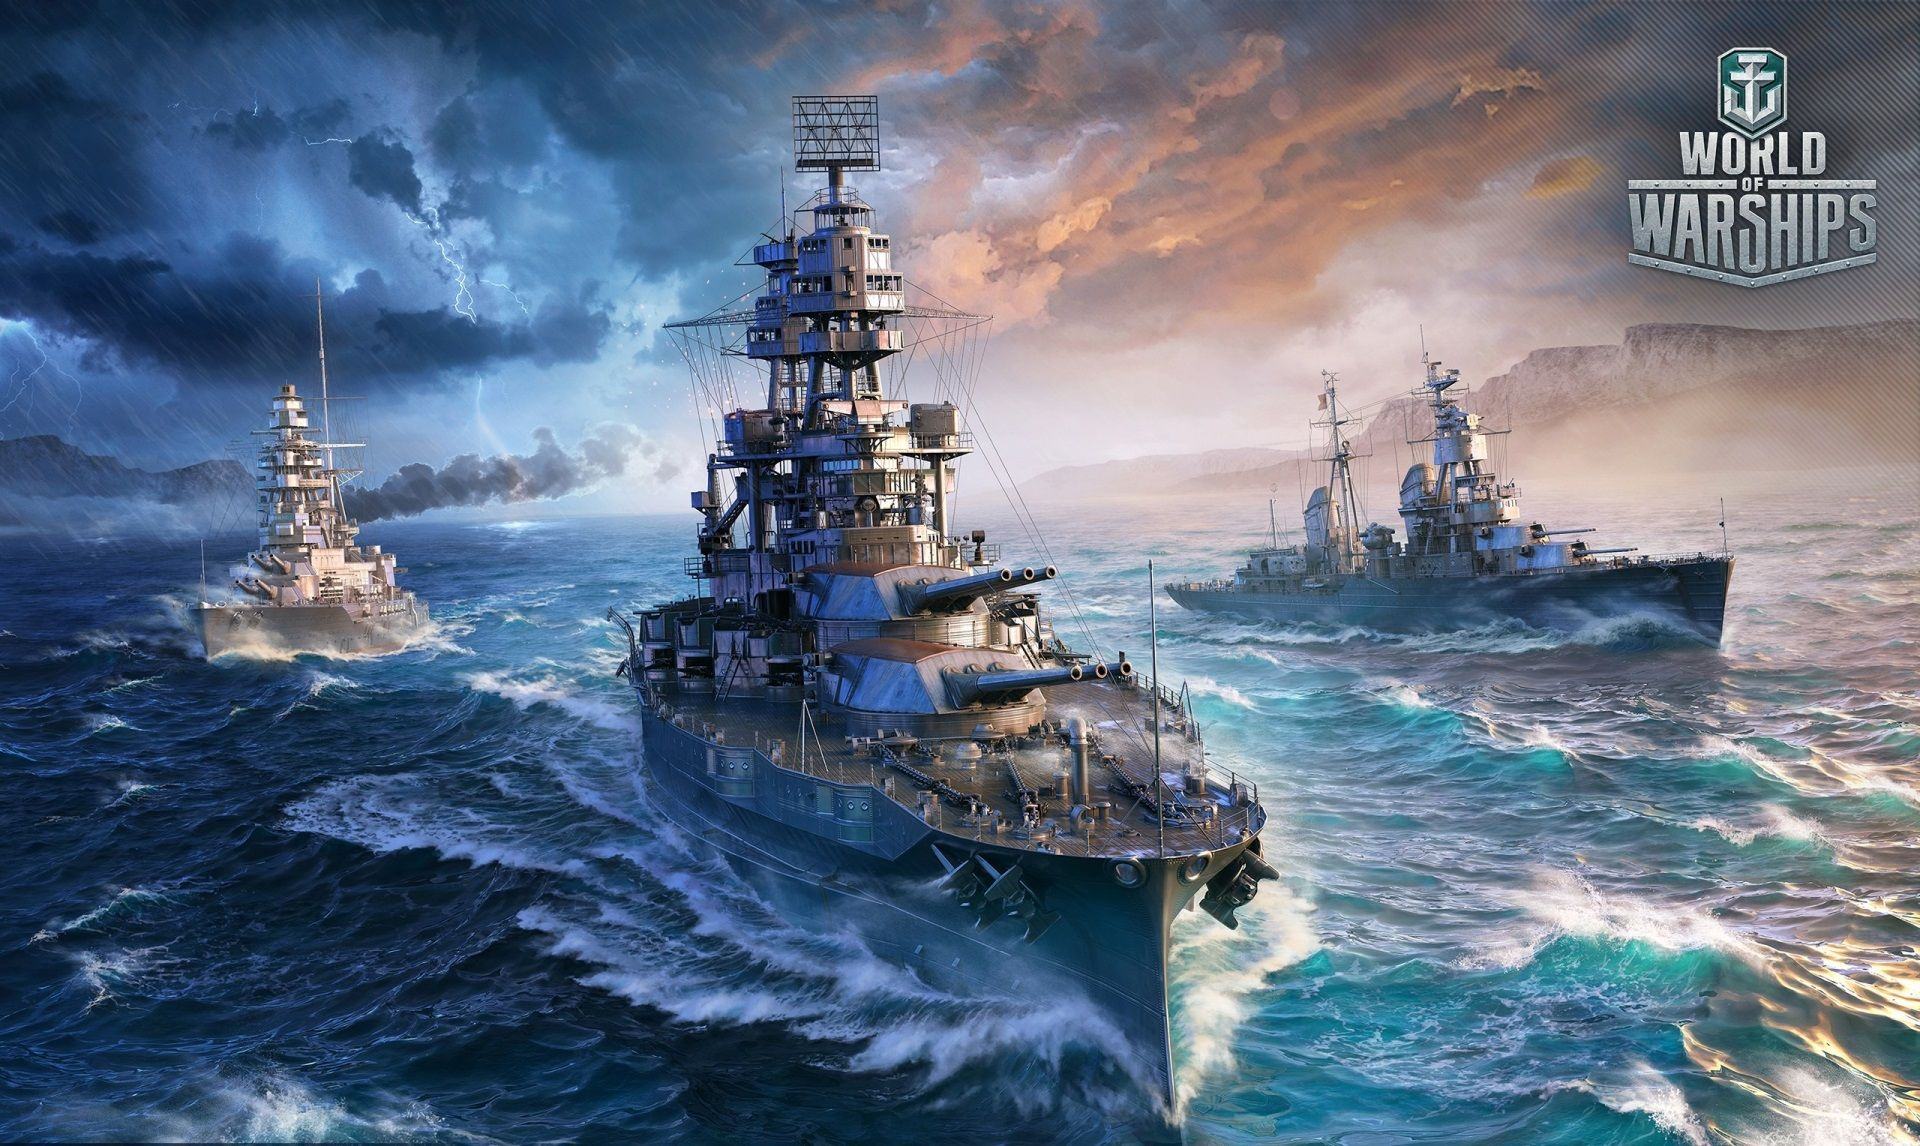 1920x1146 World Of Warships Interesting Wallpaper Hd With Images